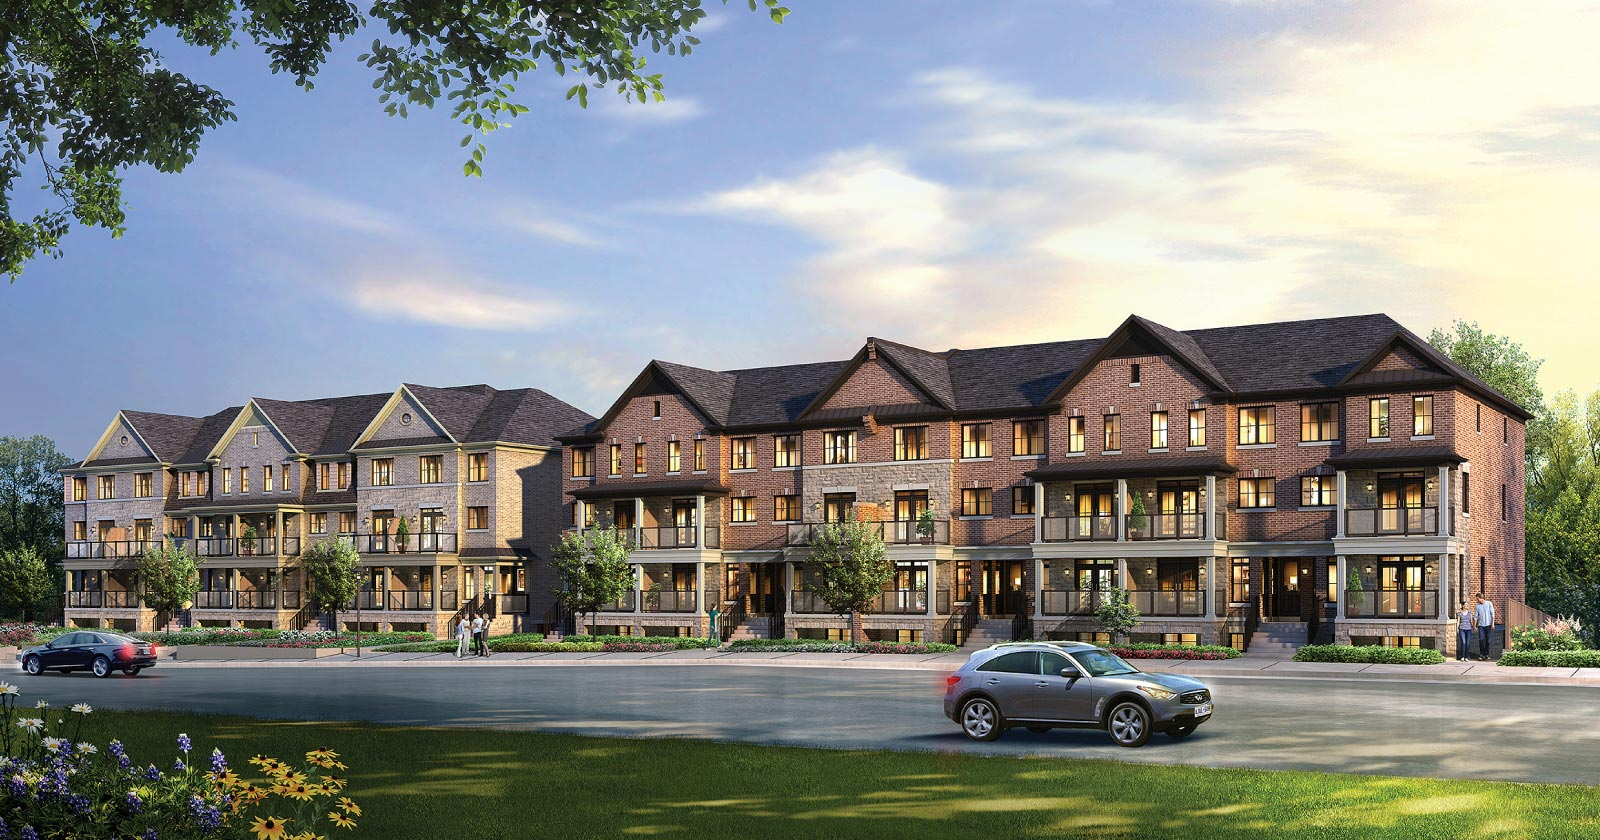 Demand for New Homes on the Rise, Supply Declining Image